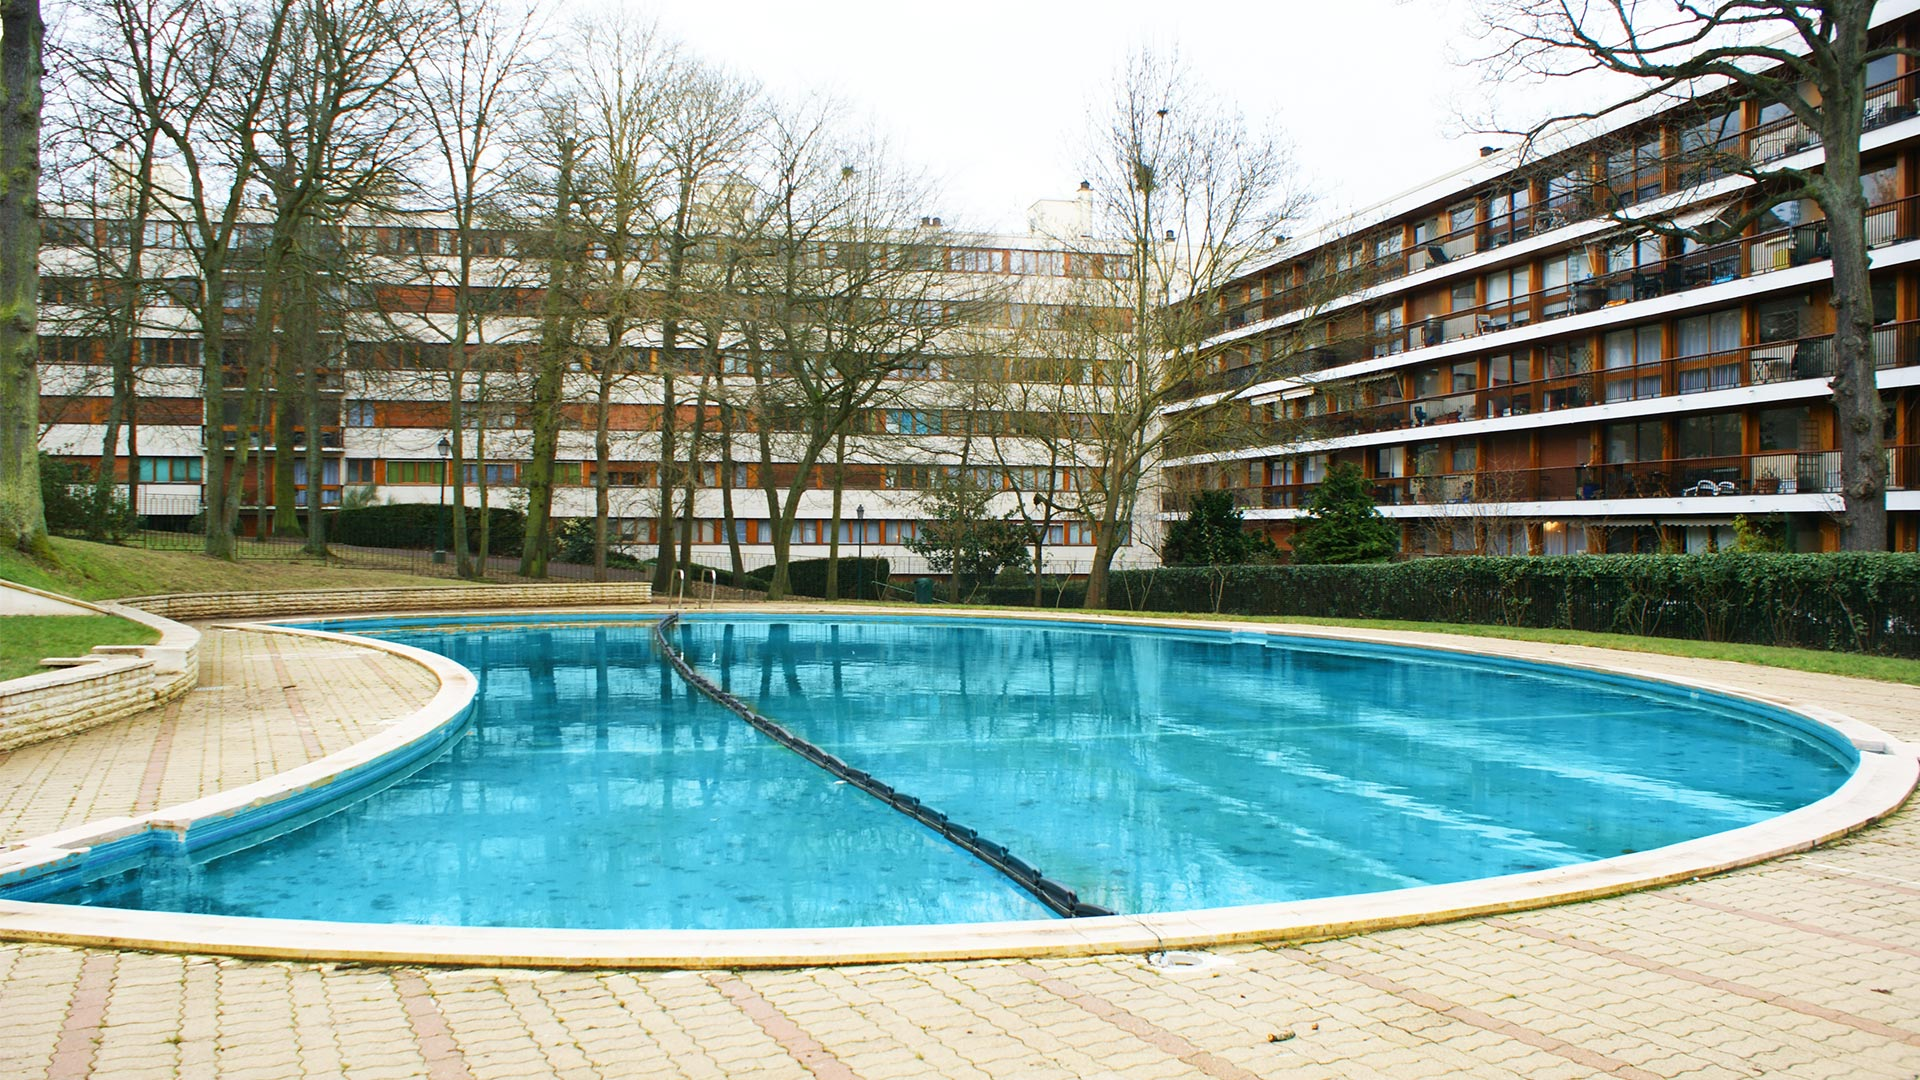 R sidence elys e 2 for Piscine saint cloud